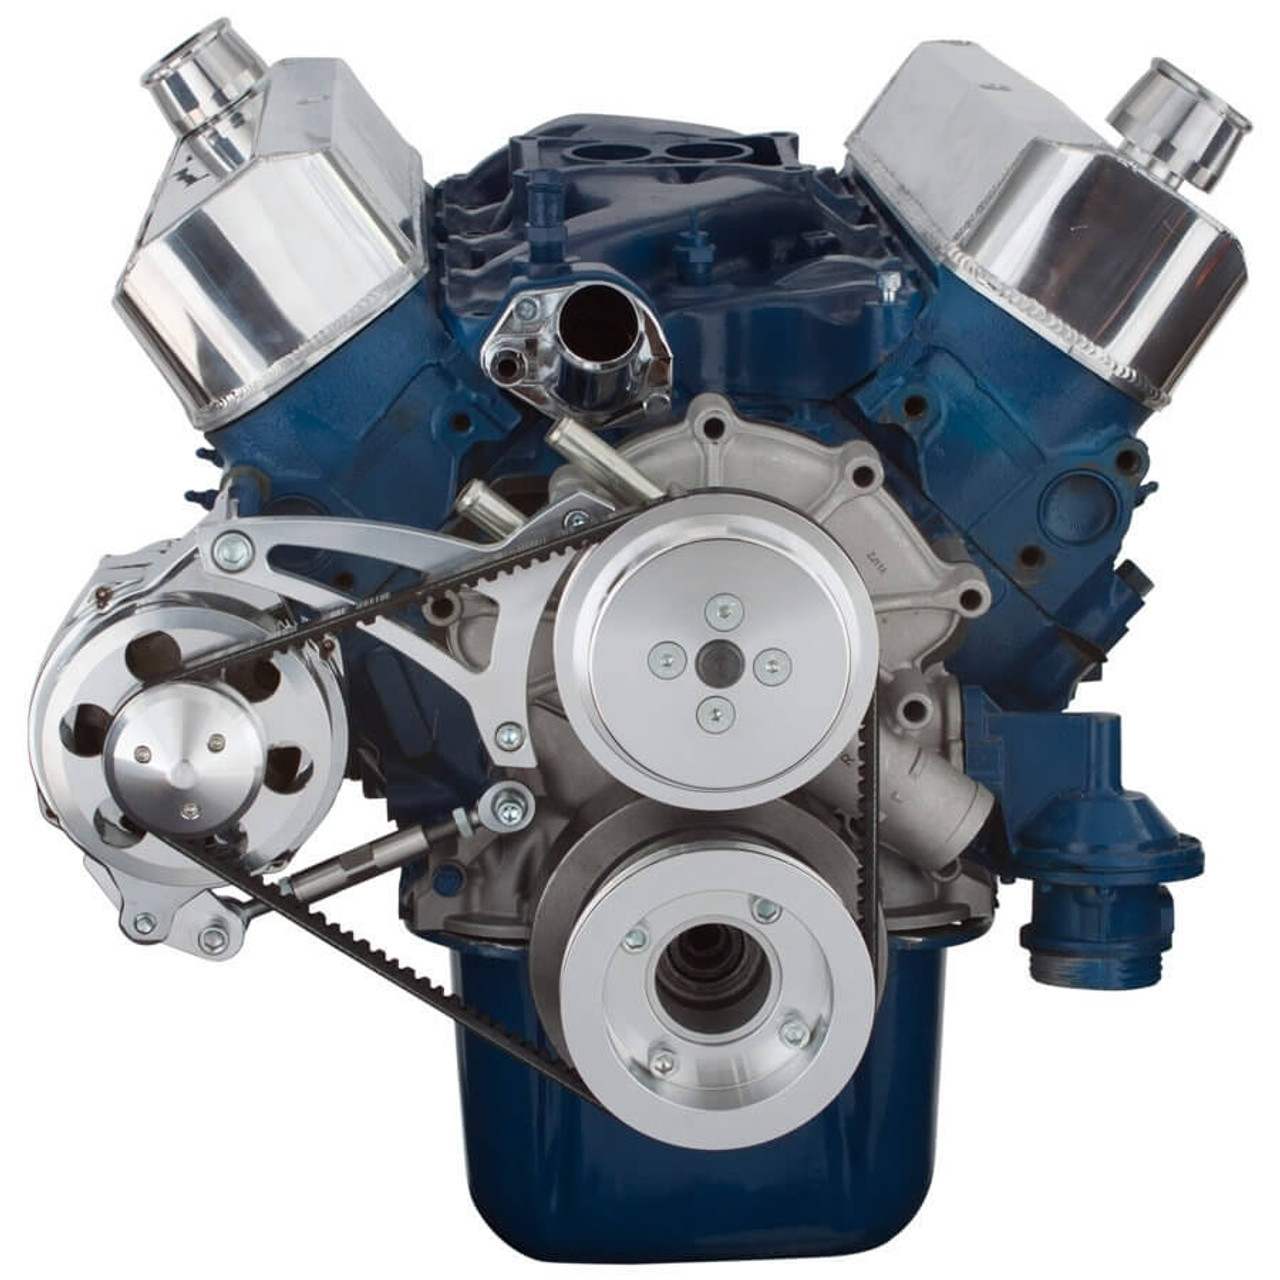 Ford Racing M8501e351s Water Pump Short Street Rod Pump For 30247351w